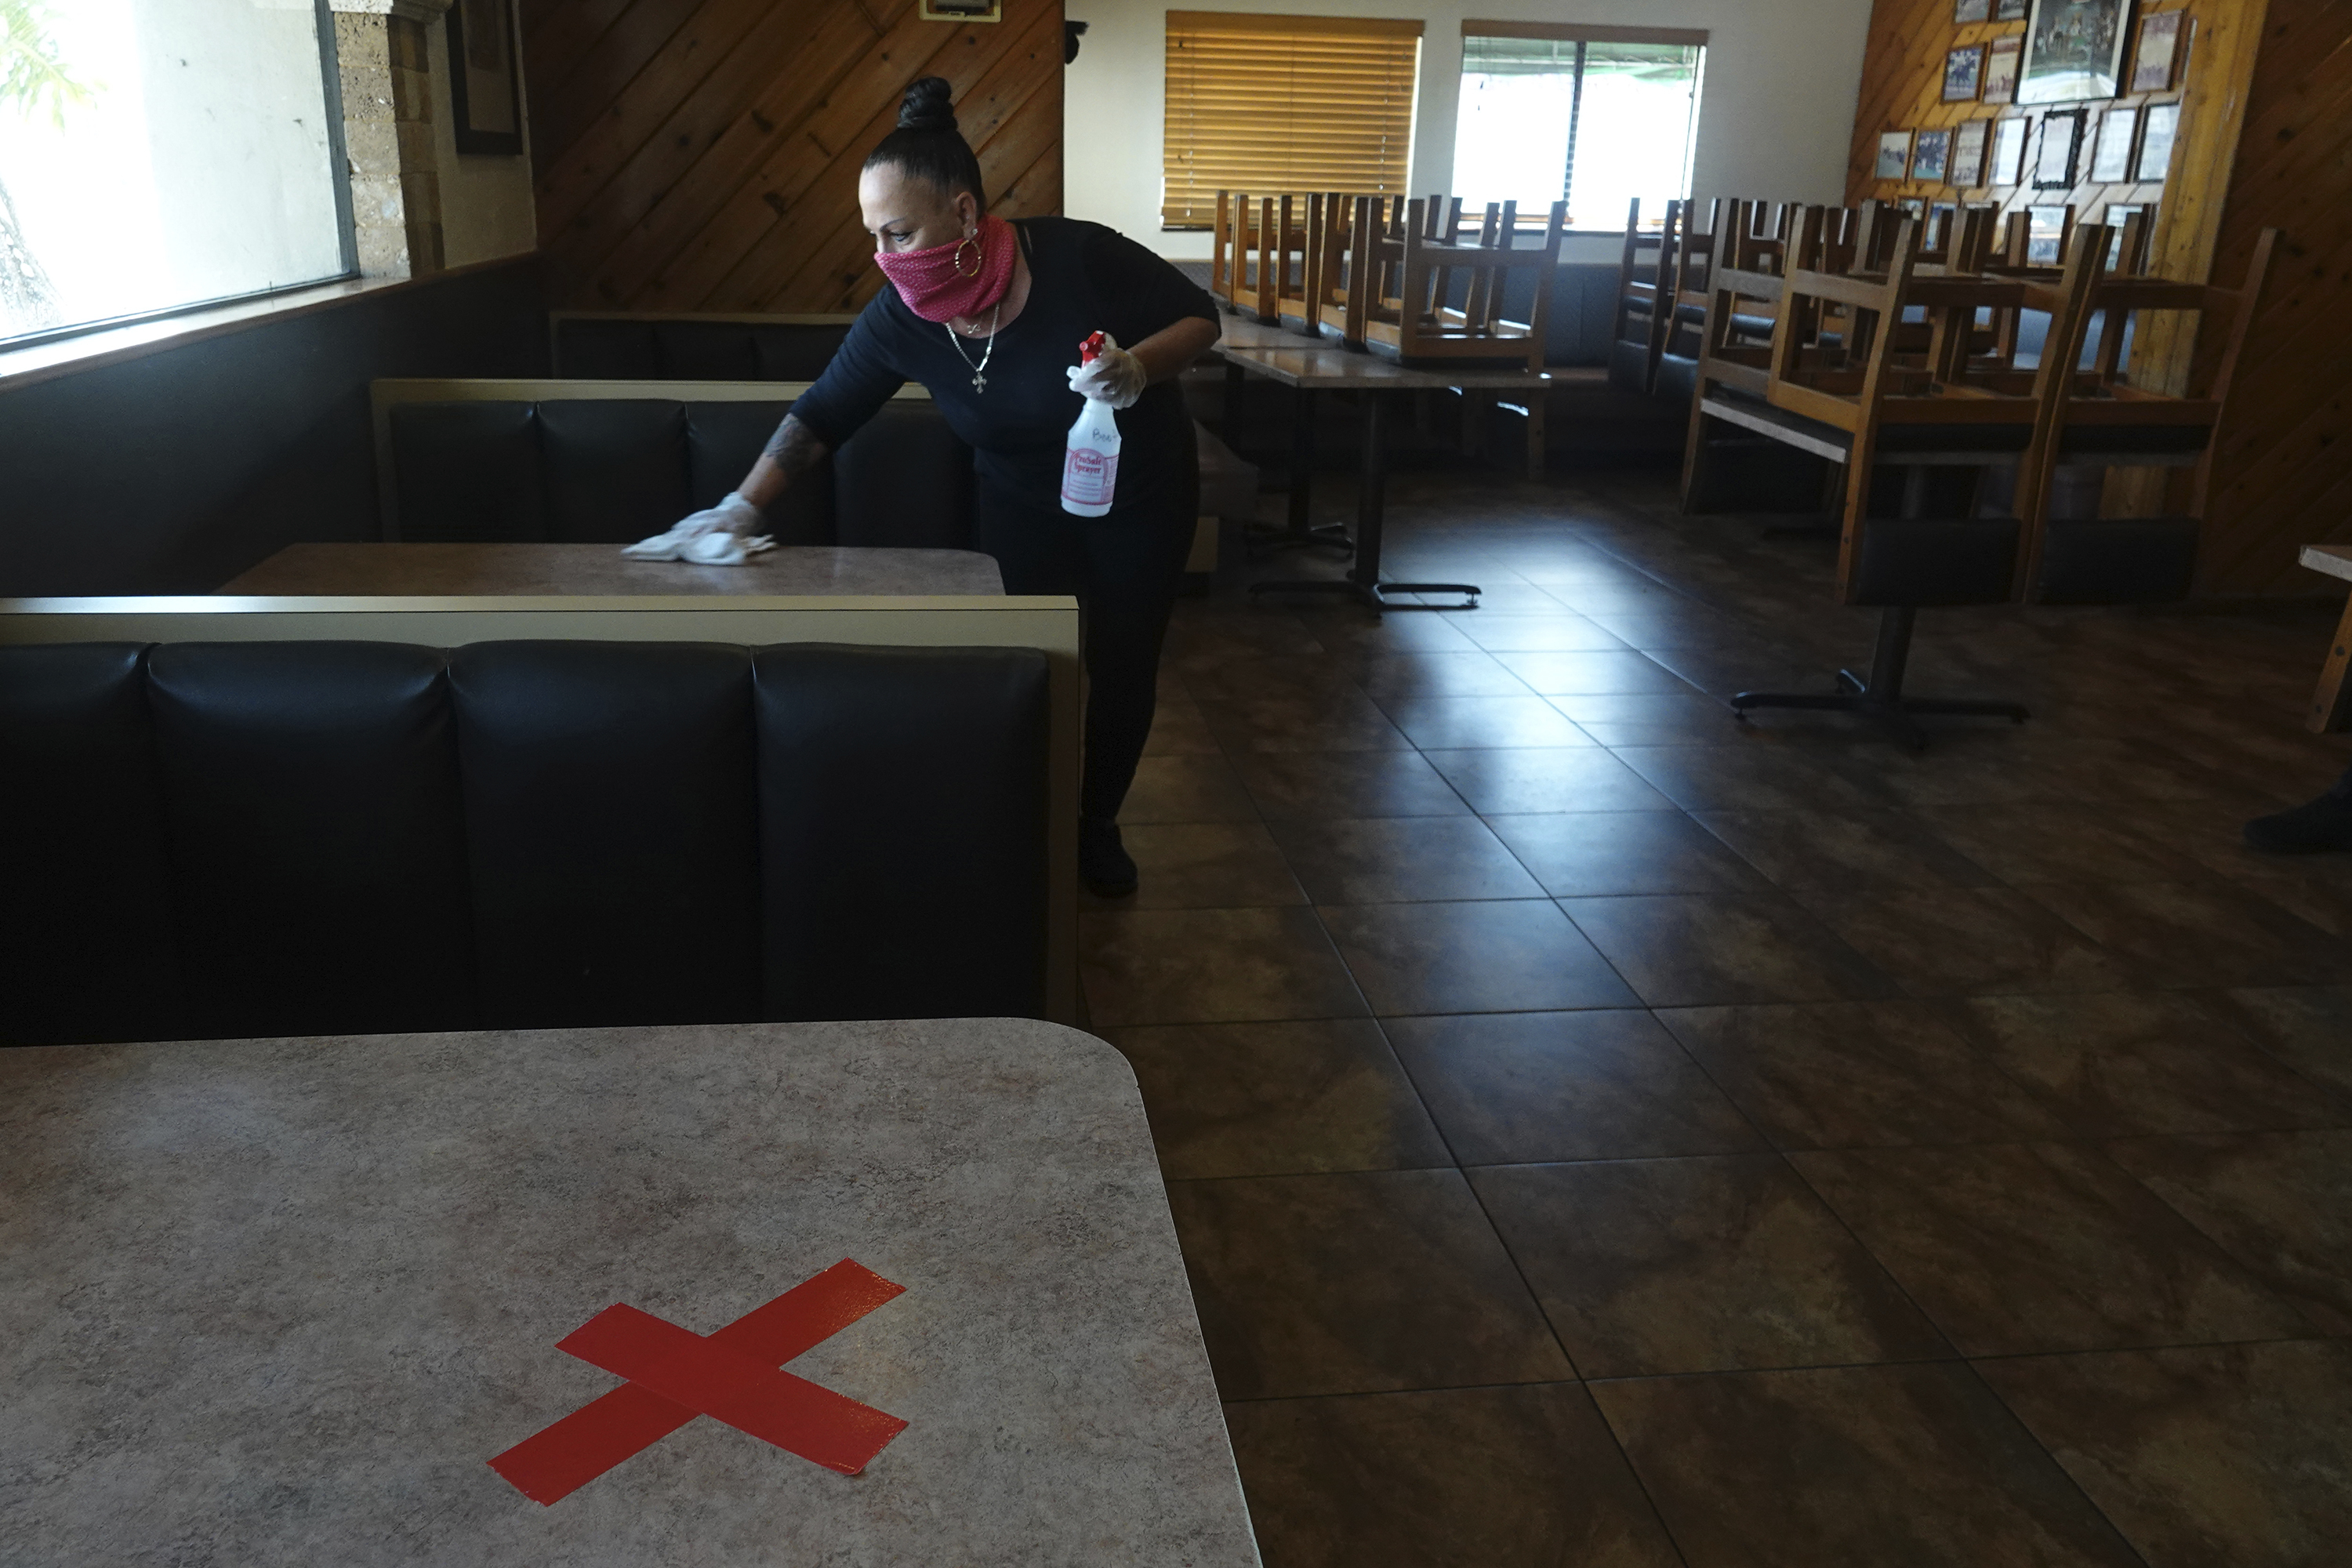 Head waitress Barbara Rogers disinfects tables at the Peter Pan Diner in Oakland Park, Florida, on May 17. Broward County businesses are set to partially reopen on May 18.